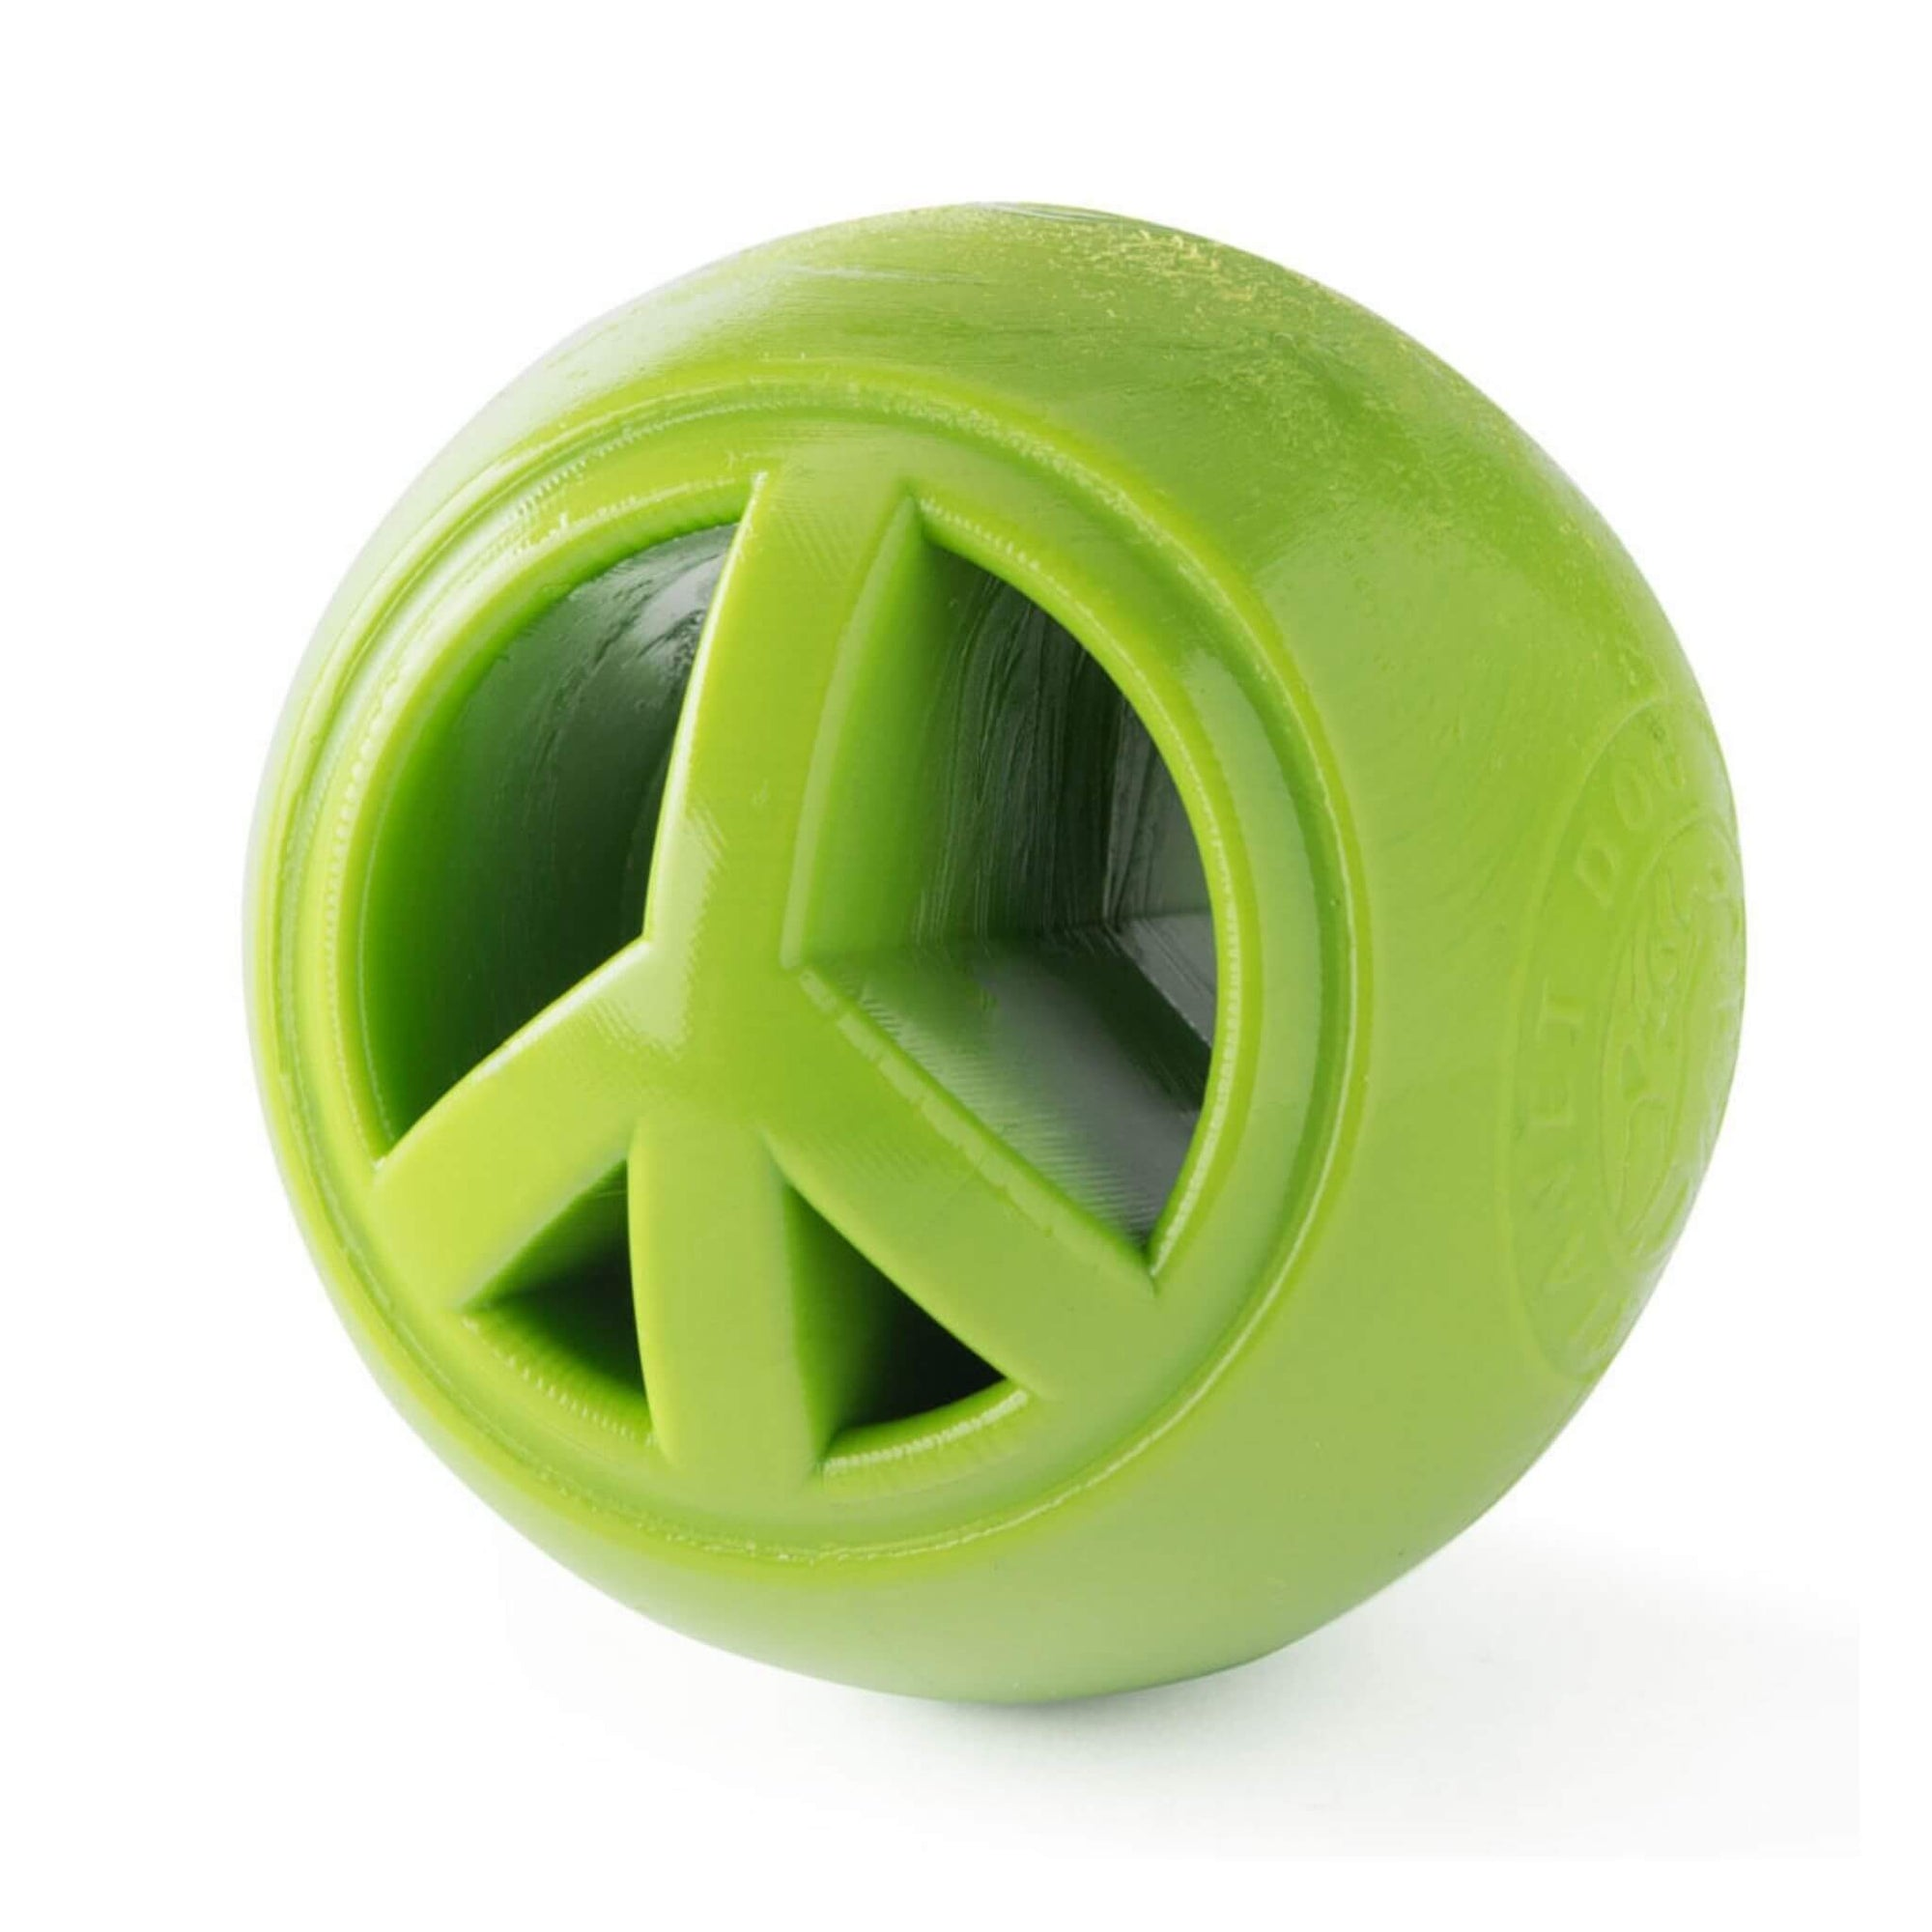 Planet Dog Orbee-Tuff Nooks Dog Toy - Peace Sign